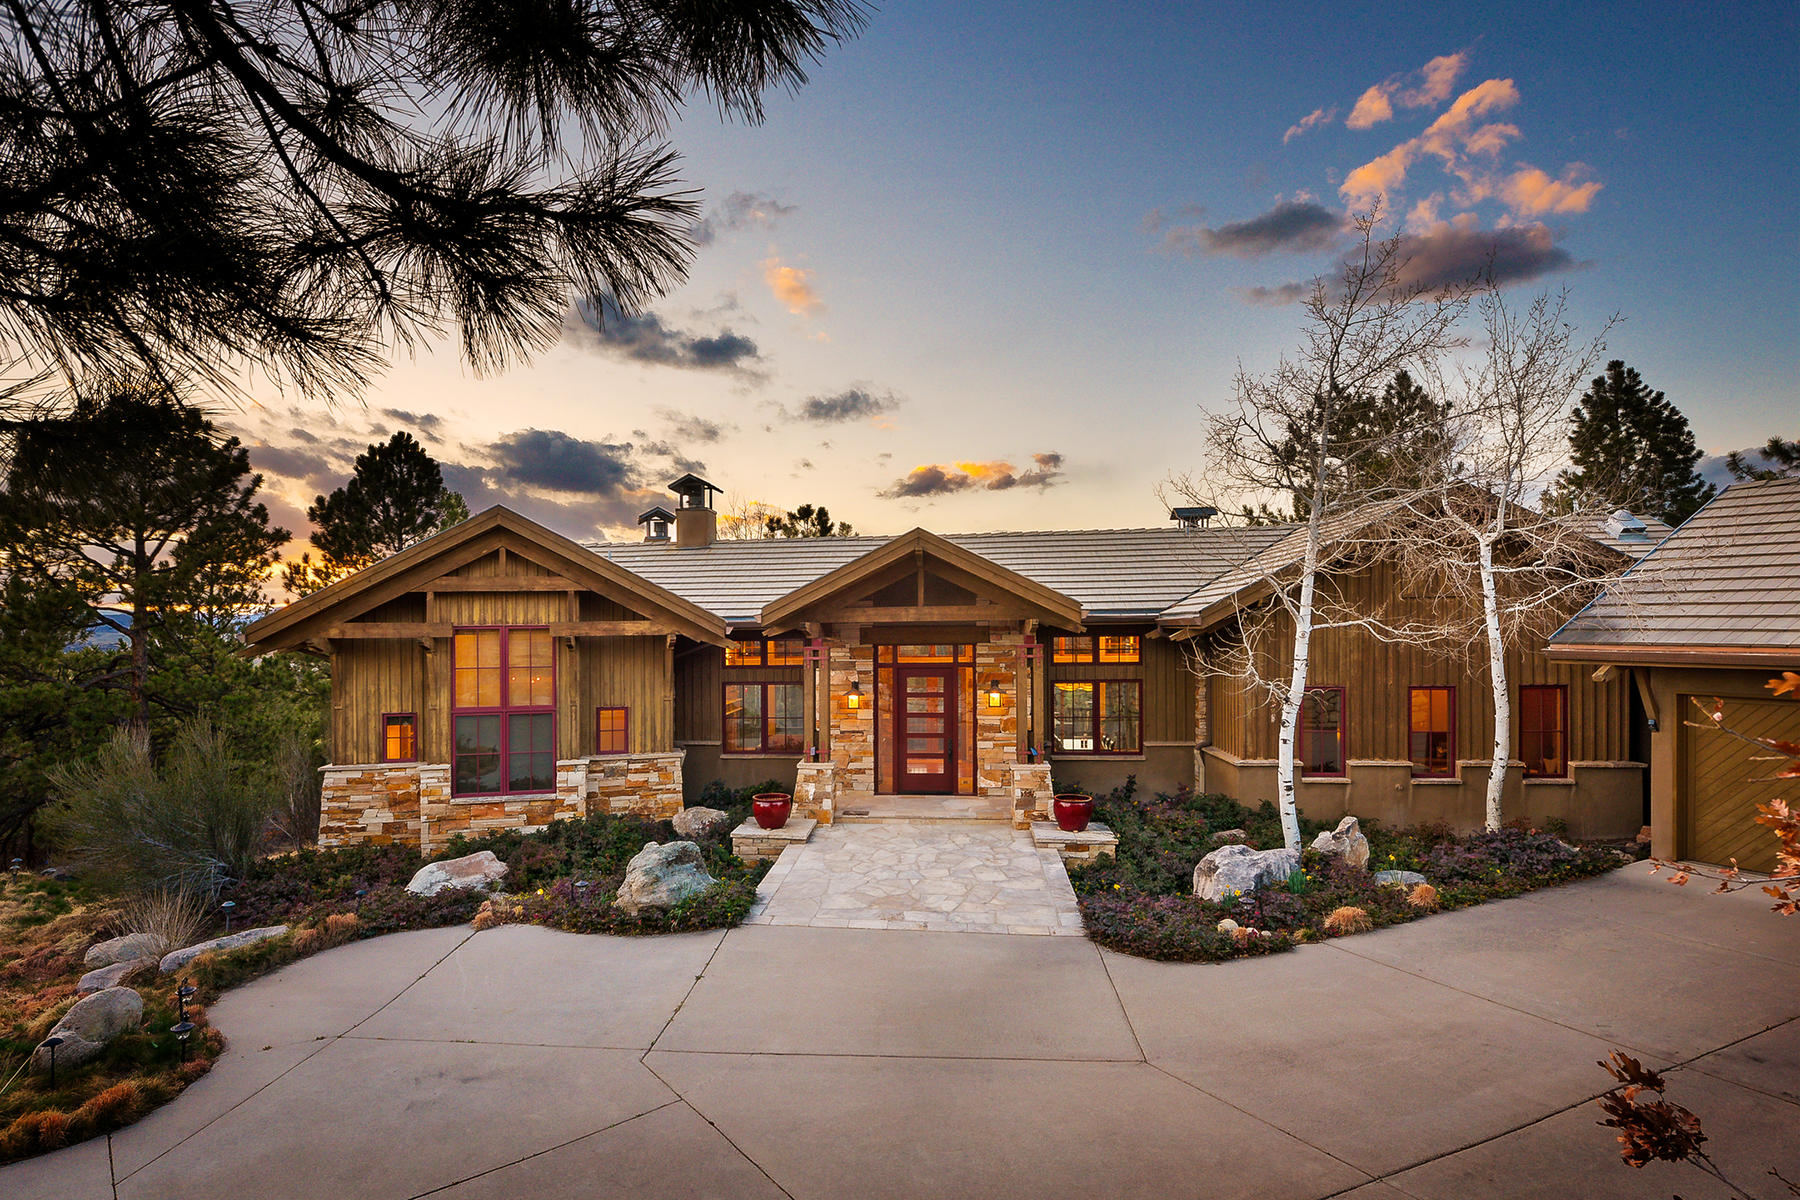 Single Family Home for Active at Exceptional architecture highlights this truly custom ranch home. 762 Valderrama Ct Castle Rock, Colorado 80108 United States